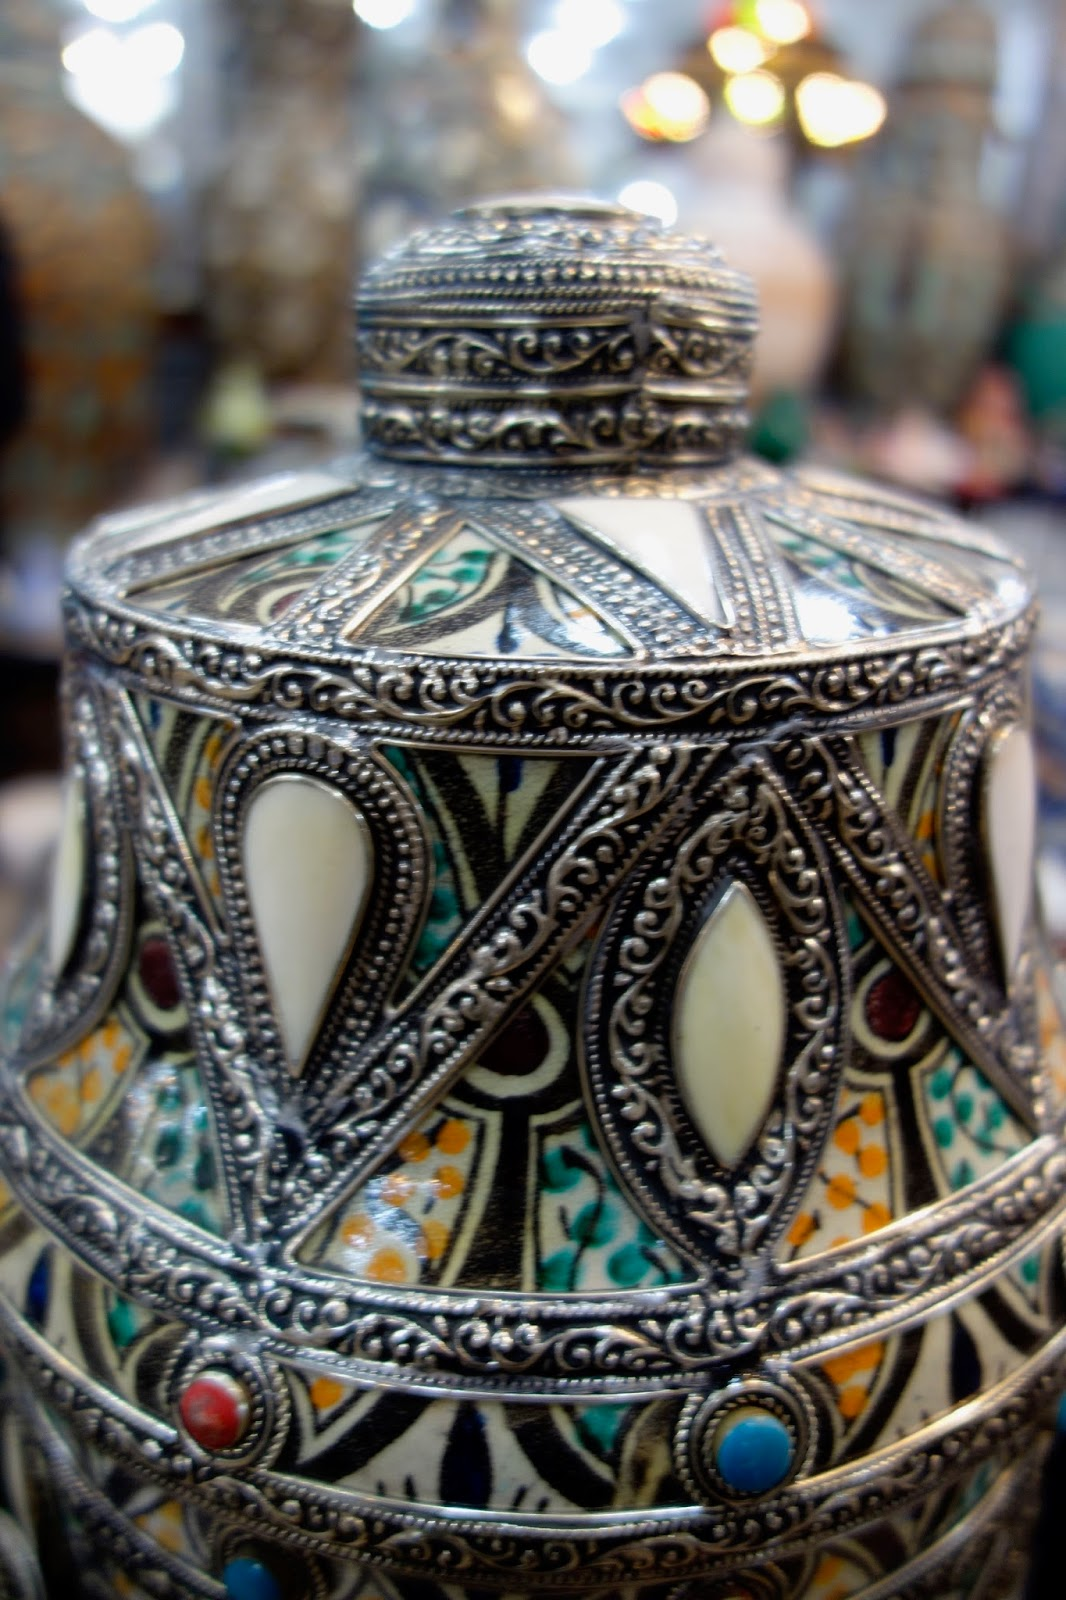 TRAVELS TO FEZ - Filigree, pottery,textiles